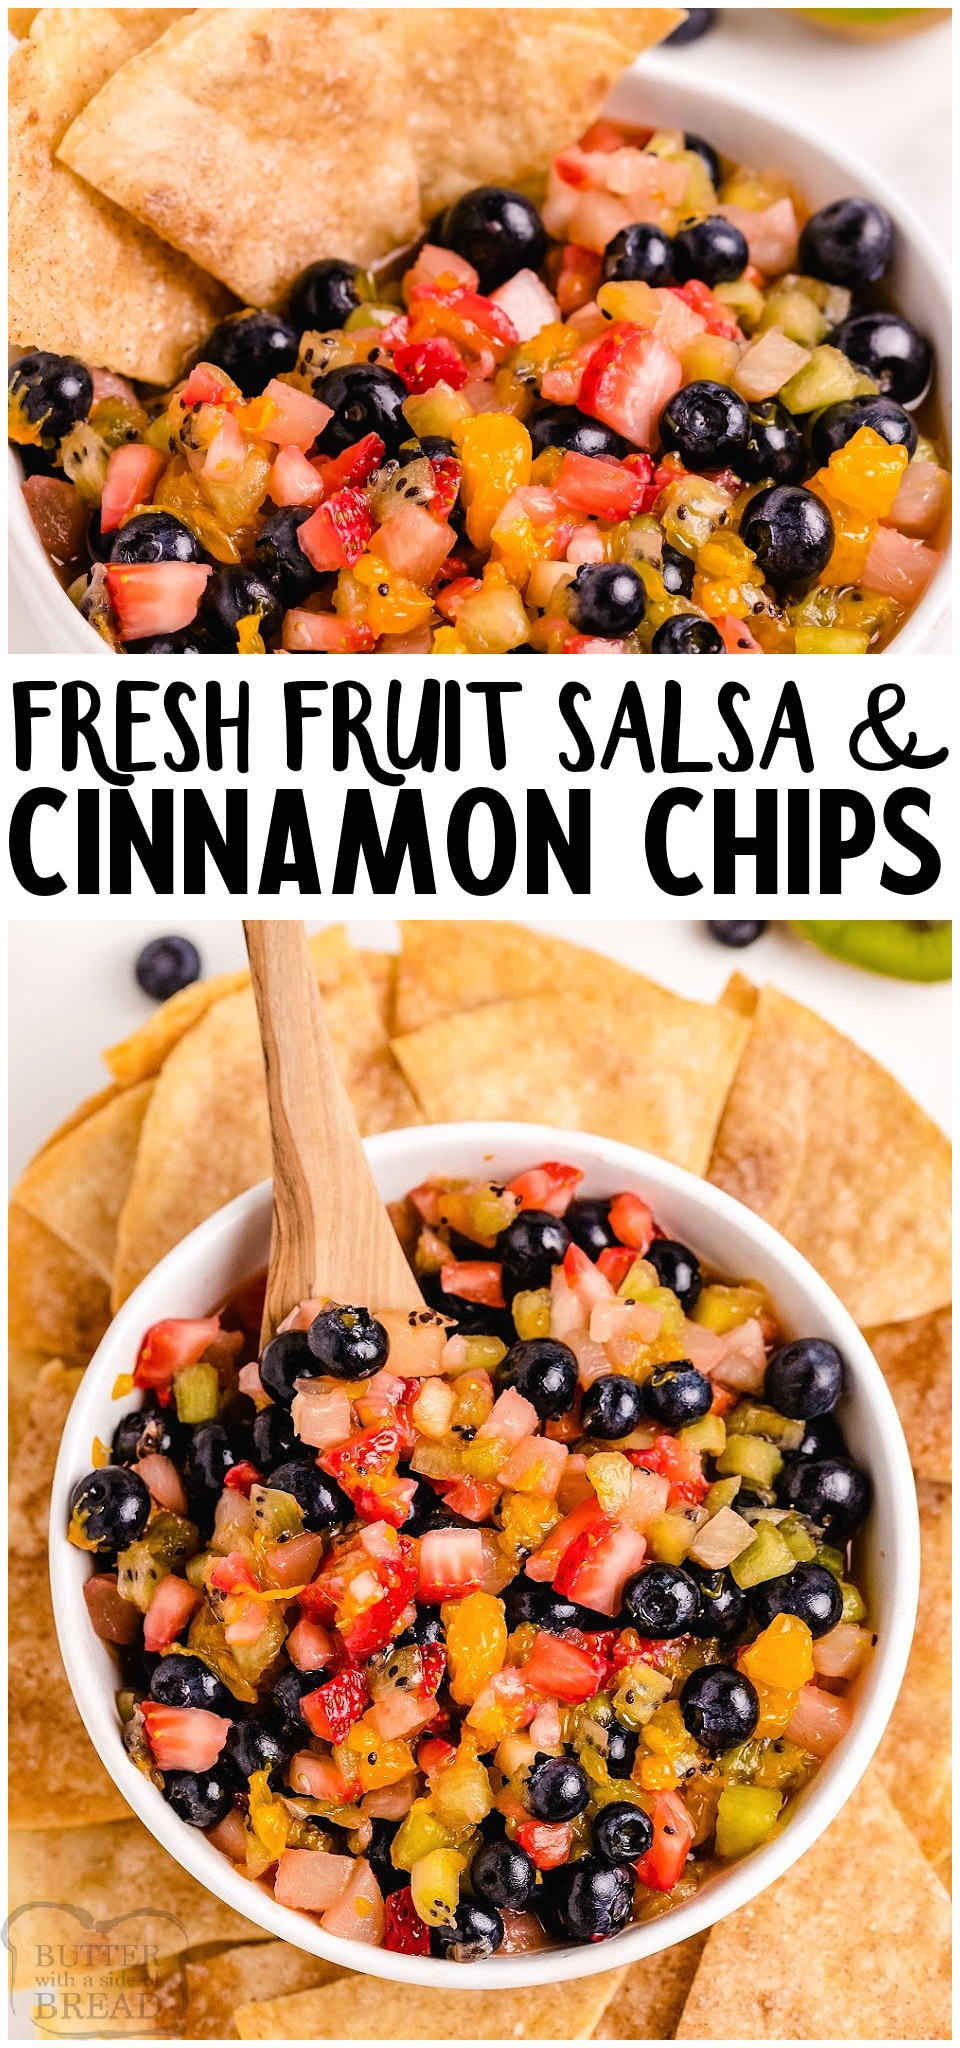 Fresh Fruit Salsa with buttery baked cinnamon chips for a fun & tasty snack or treat! Easy fruit salsa recipe that everyone raves about. It's perfect for any gathering!